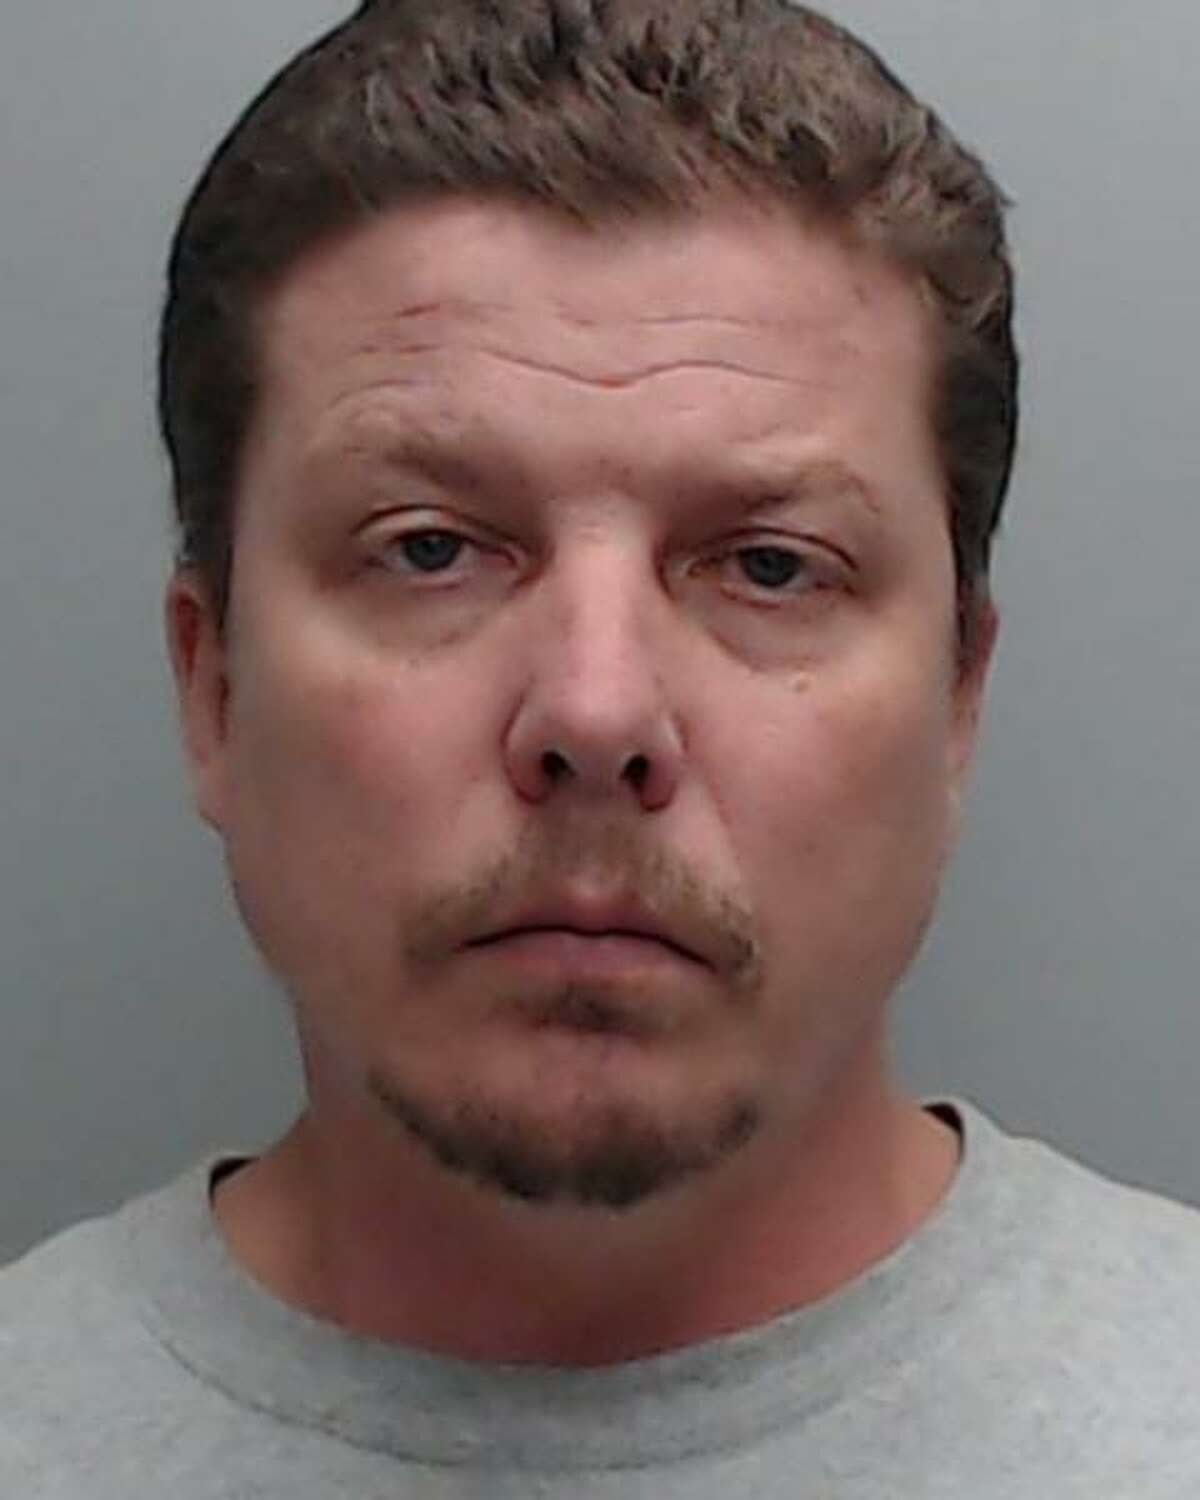 Robert Edward Linville, 44, from Kyle, was arrested and charged with a first degree felony for alleged continual sexual abuse of a victim under the age of 14. He was also charged with one count of misdemeanor sale/distribution/displaying of harmful material to a minor.